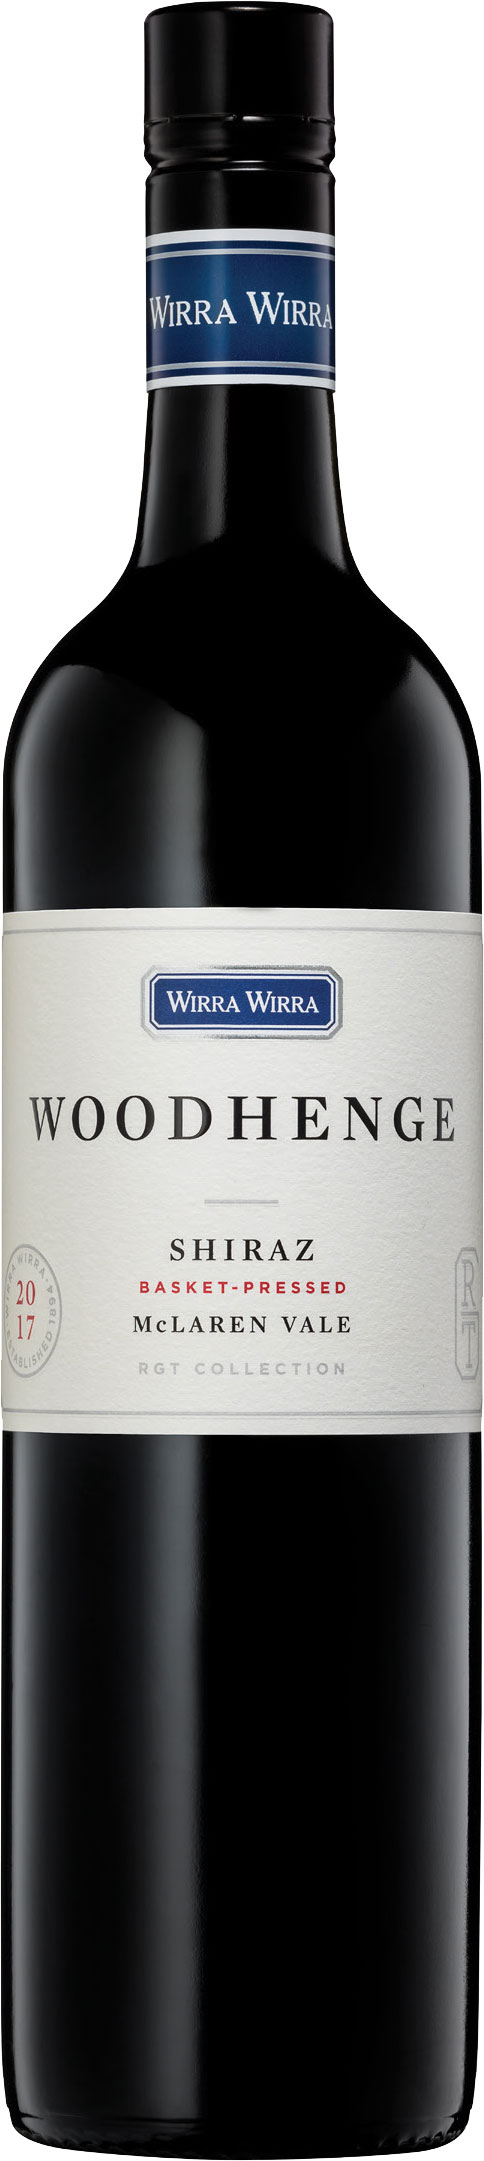 Wirra Wirra - Woodhenge Shiraz 2016 6x 75cl Bottles